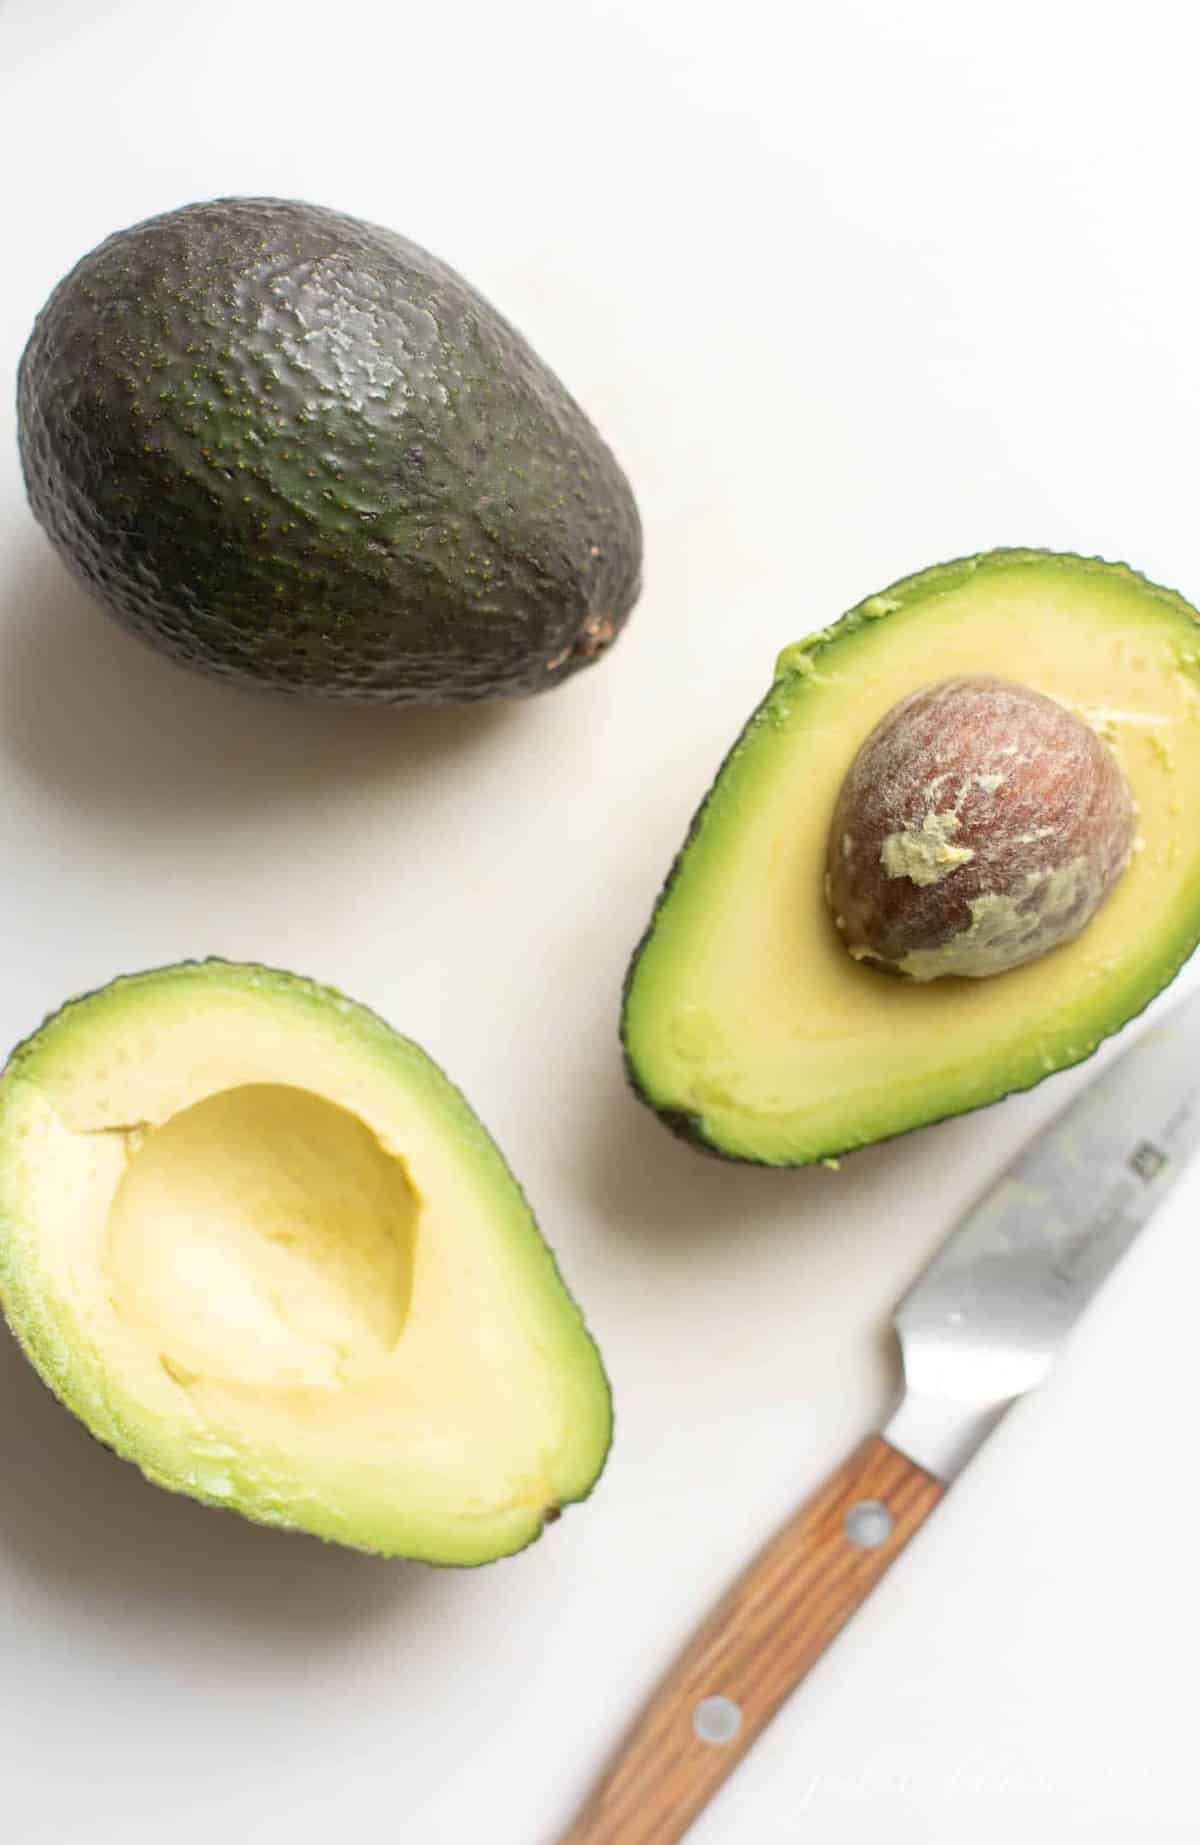 A white surface with two avocados, one sliced open with a knife to the side.